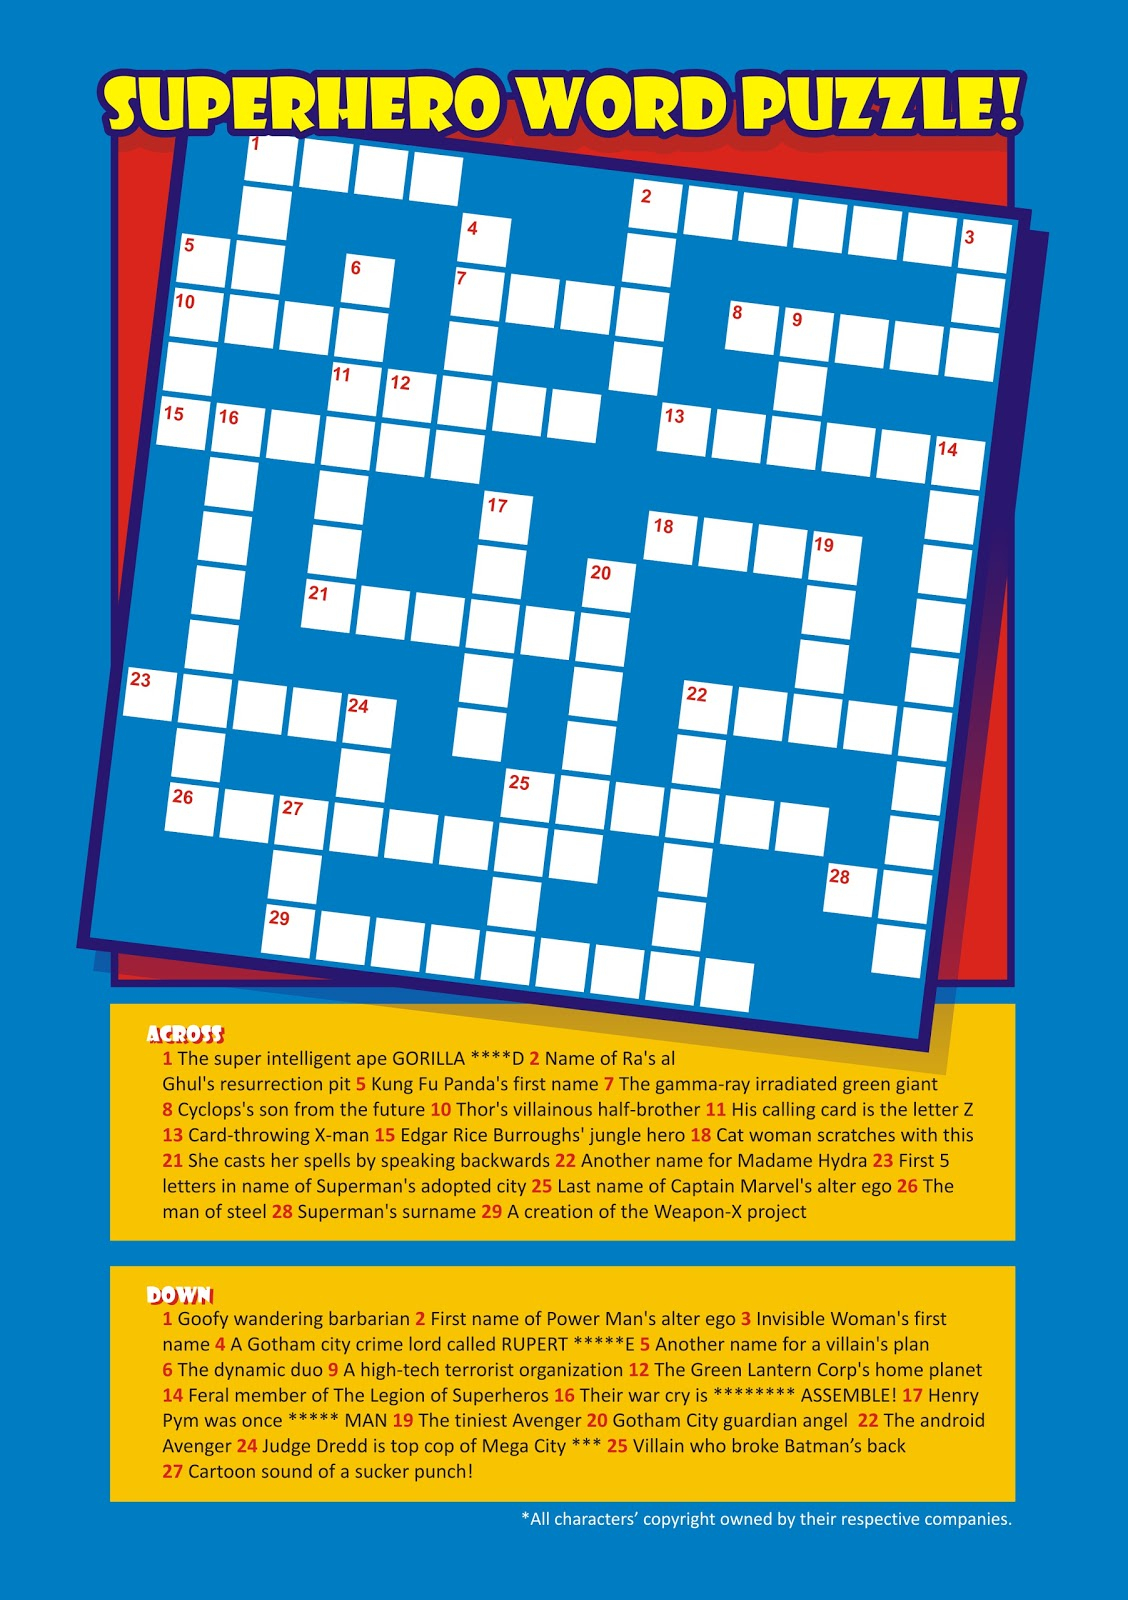 Pizzazz!: Superhero Crossword Puzzle! - Printable Superhero Crossword Puzzle